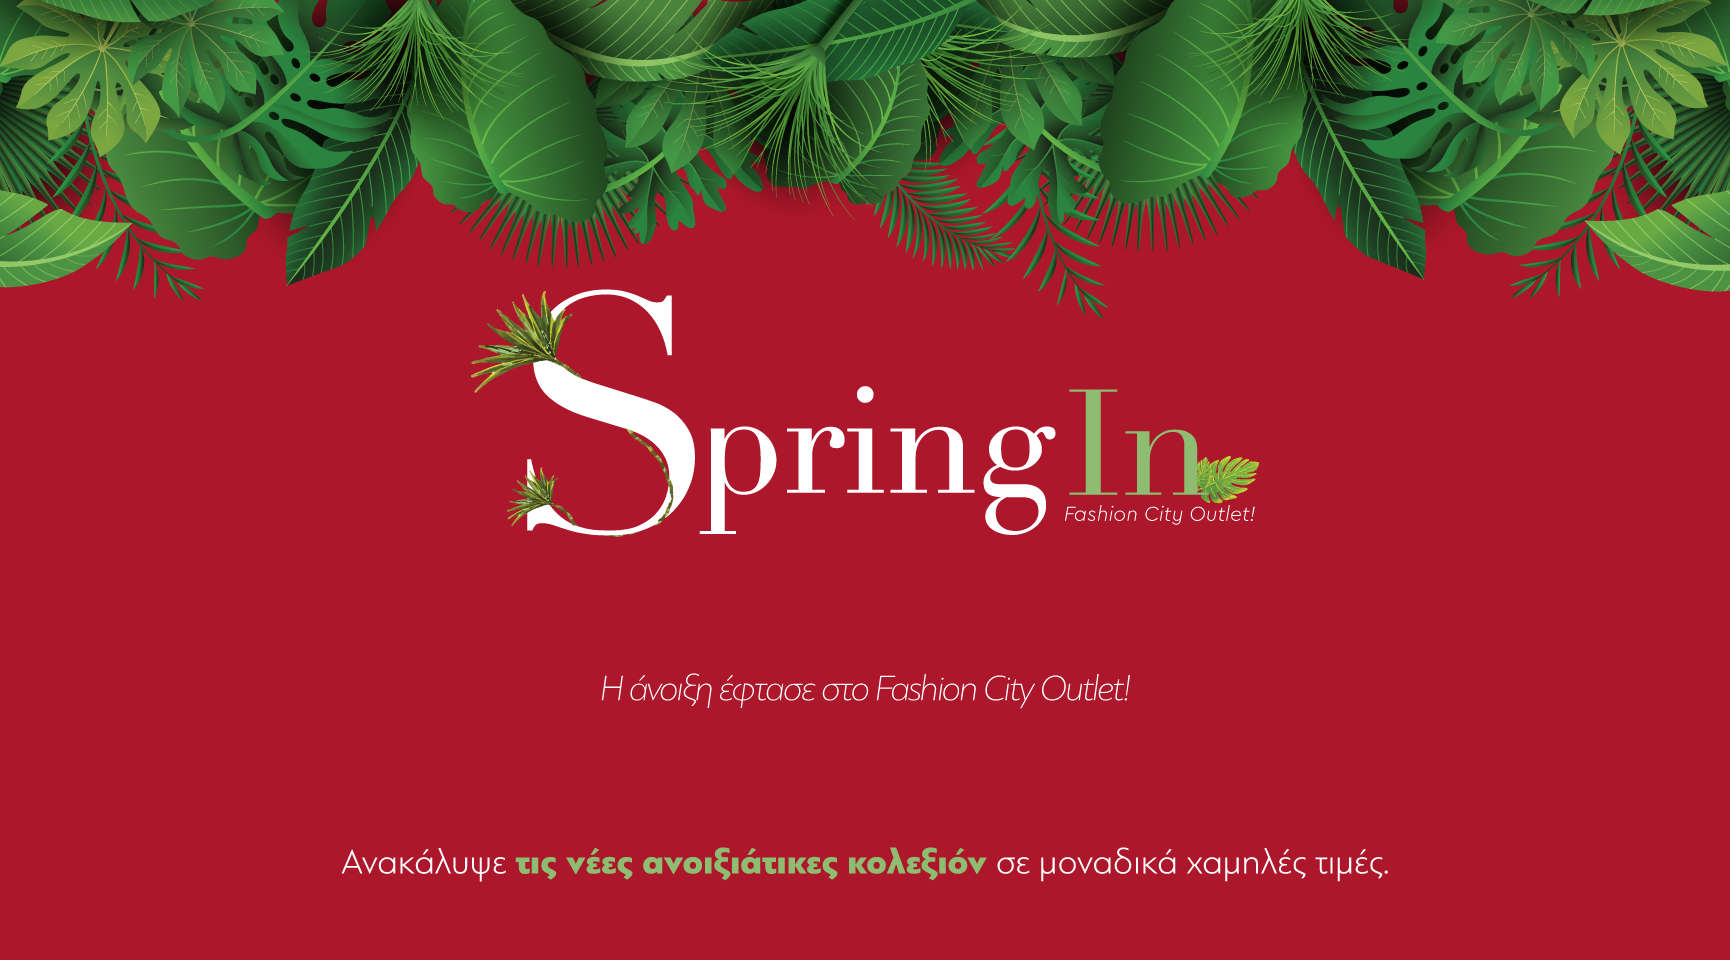 Spring is IN Fashion City Outlet!